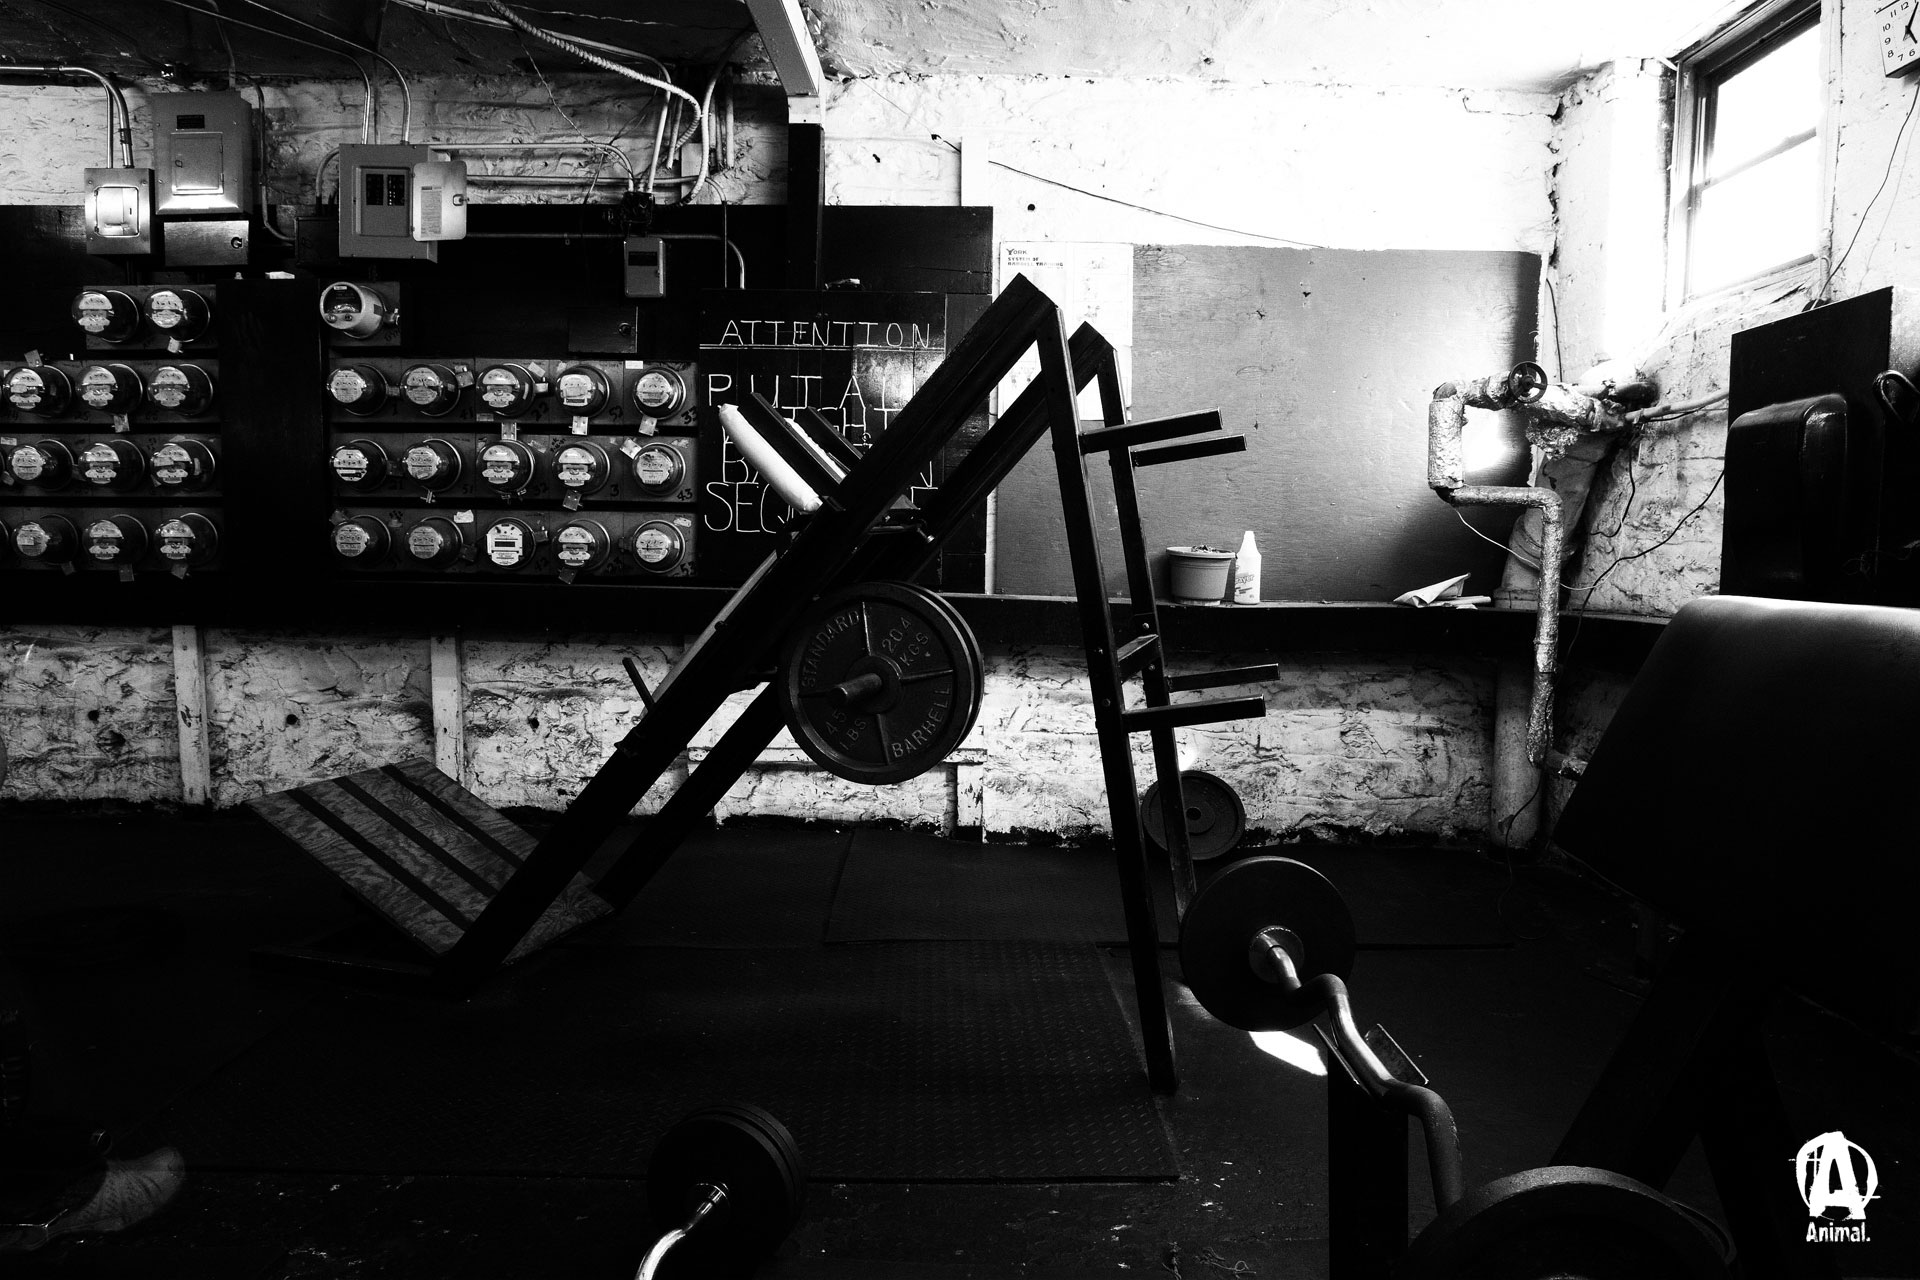 Gym wallpaper hd wallpapersafari